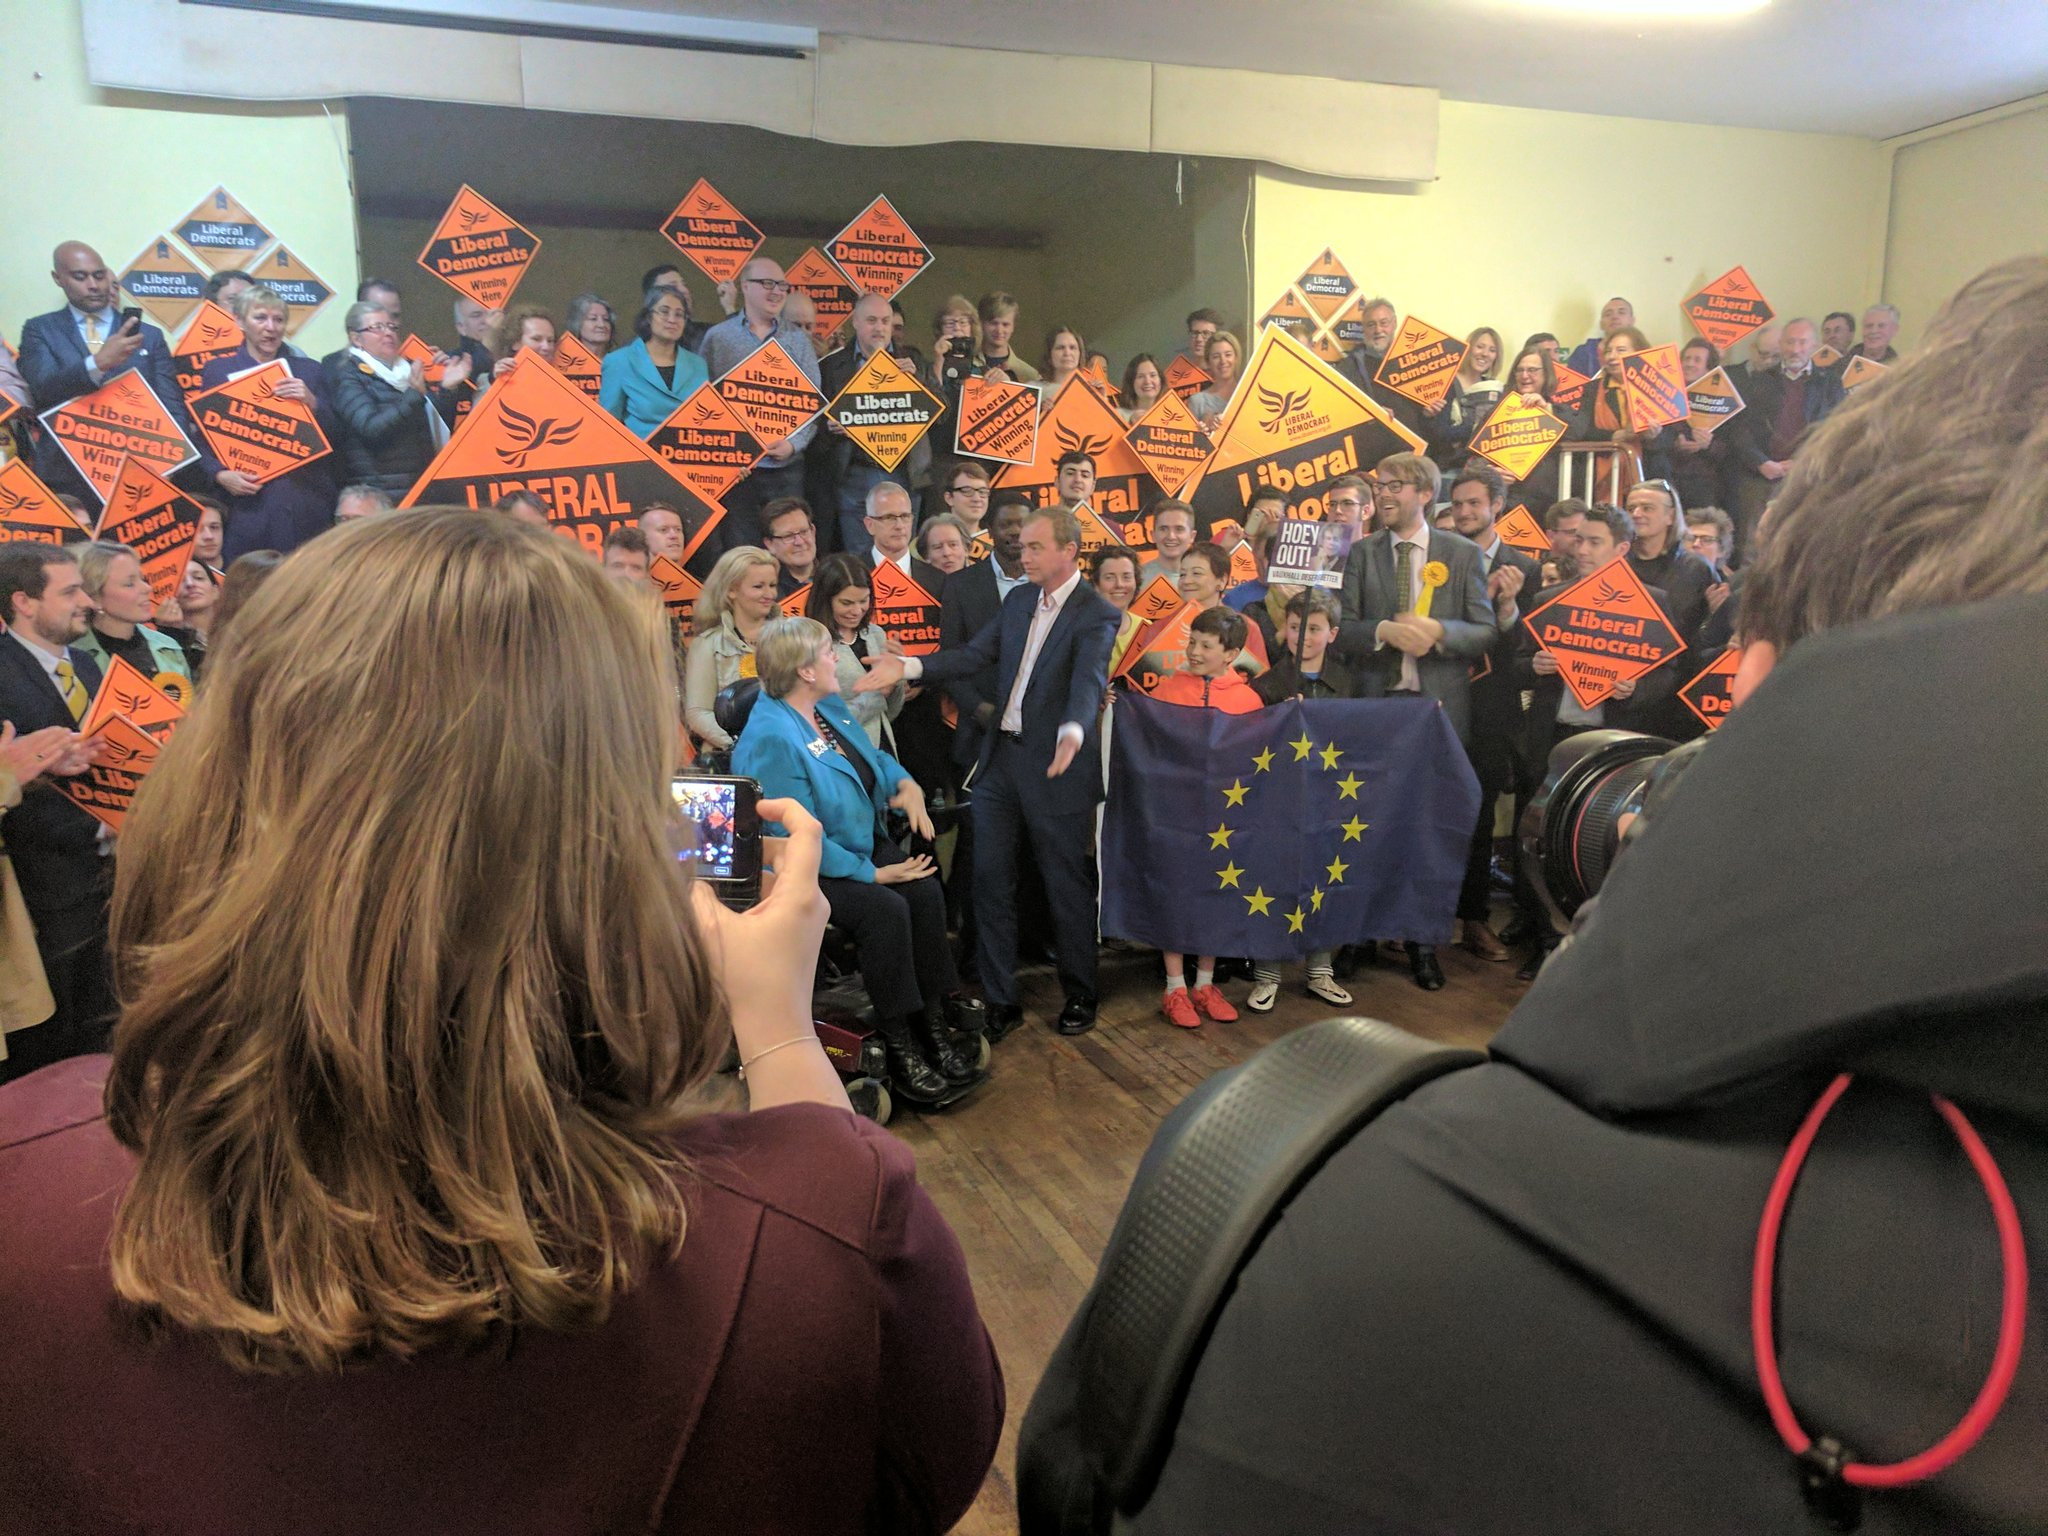 'It feels like Richmond' Lib Dems insist. https://t.co/XPhIuTLv3V